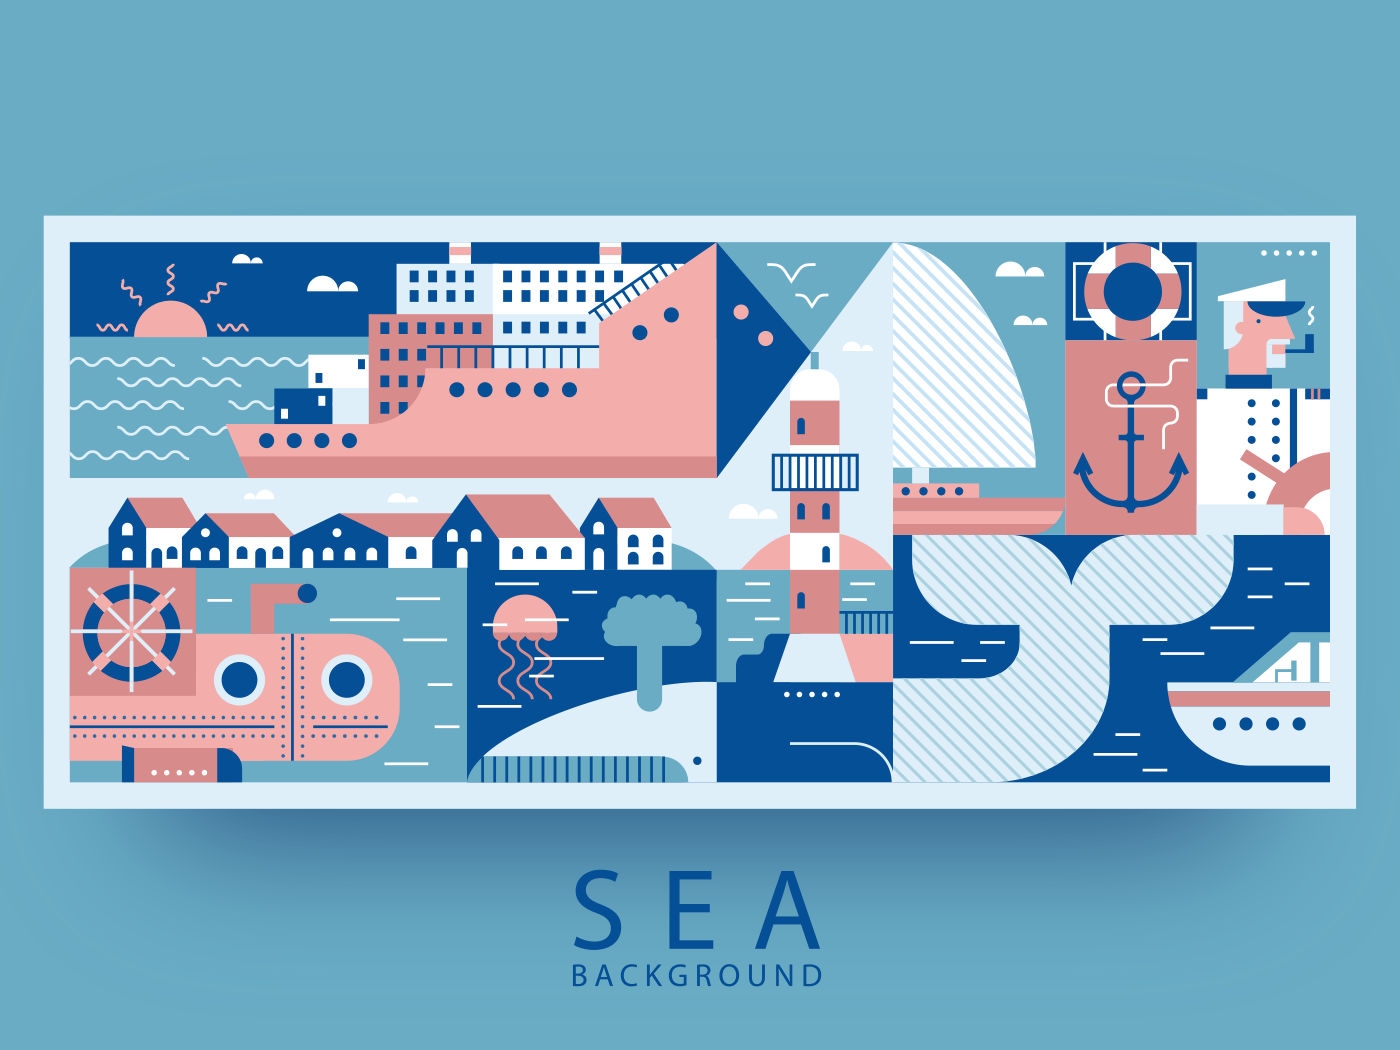 Sea port and city background illustration